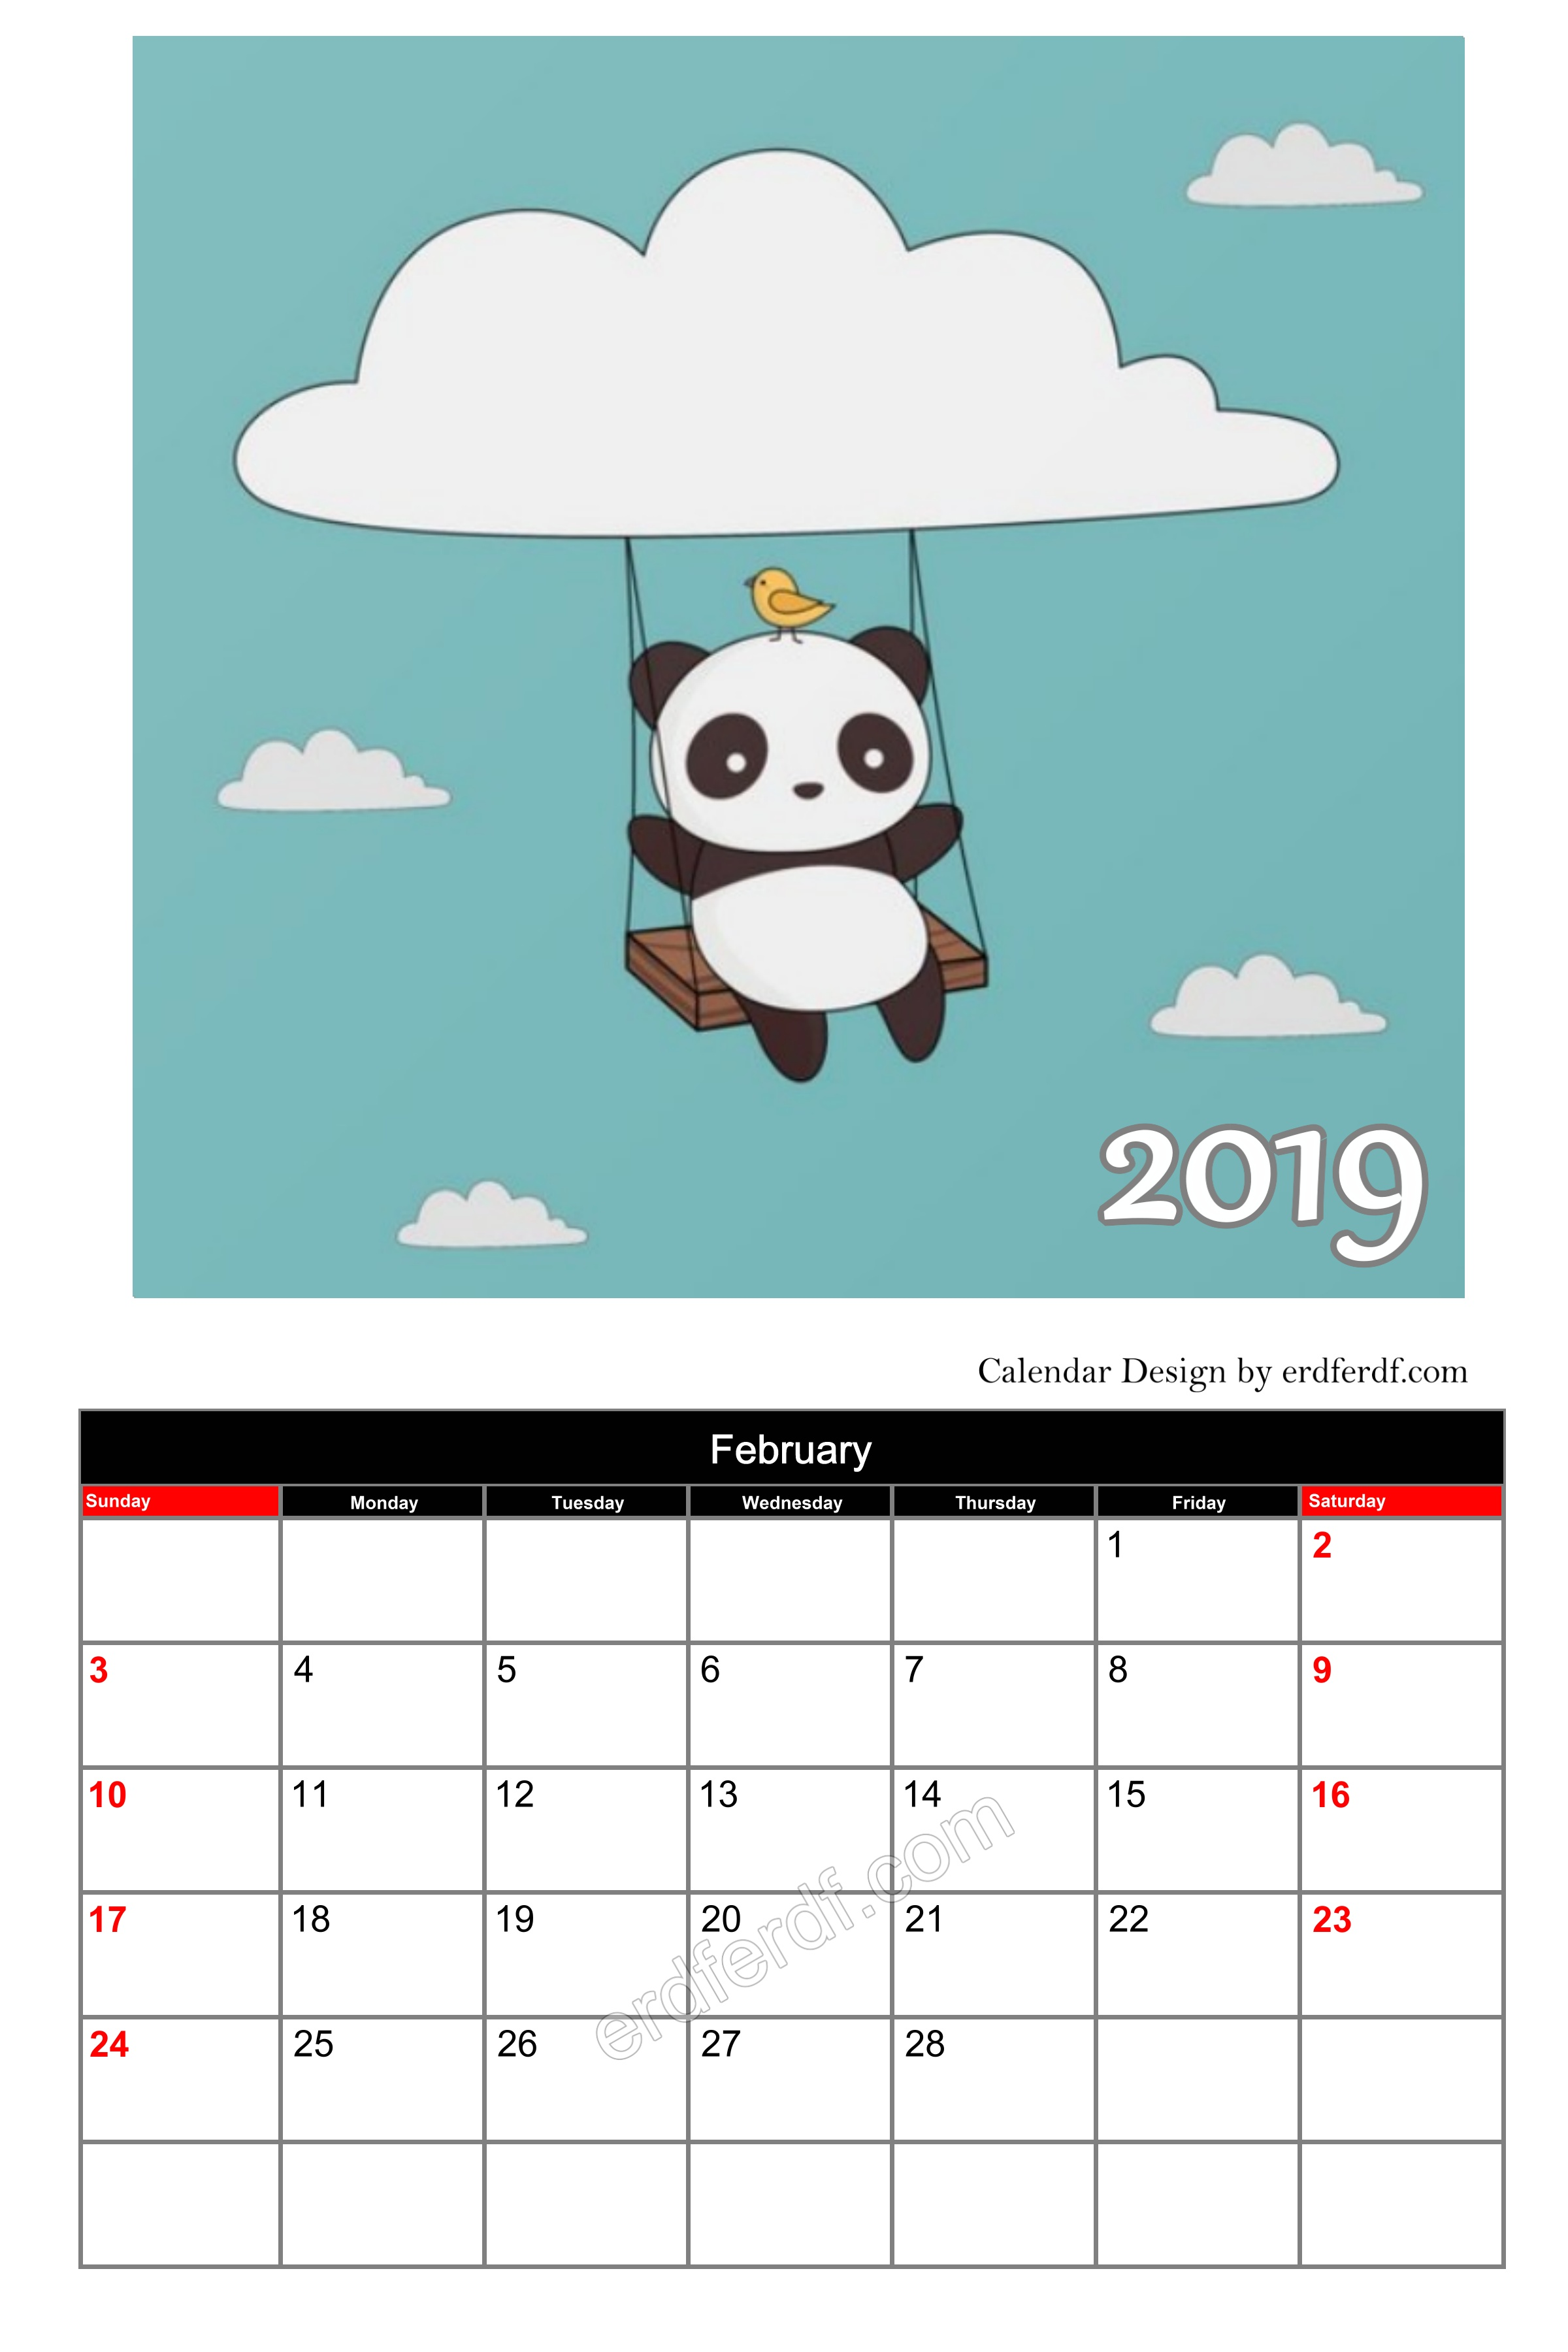 Panda Cute On Sky Editable Calendar 2019 February Cute Free Download